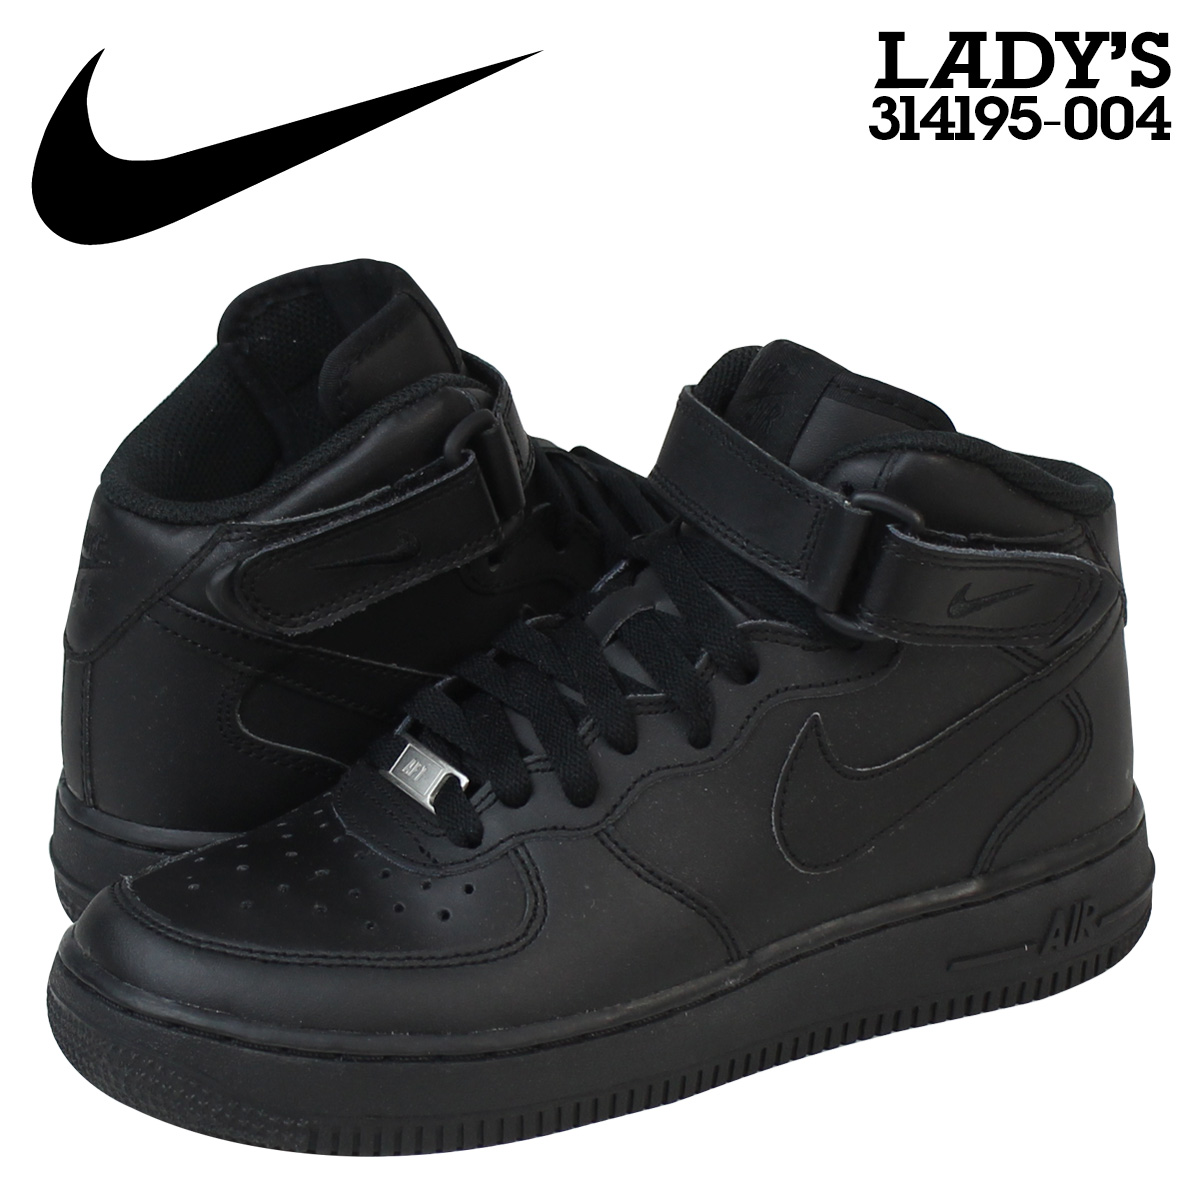 outlet store cb4c0 a7409 Nike NIKE Womens AIR FORCE 1 MID GS sneakers air force 1 mid leather Kids  Girls Junior kids GIRLS 314195-004 BLACKBLACK black 2  6 new in stock  ...